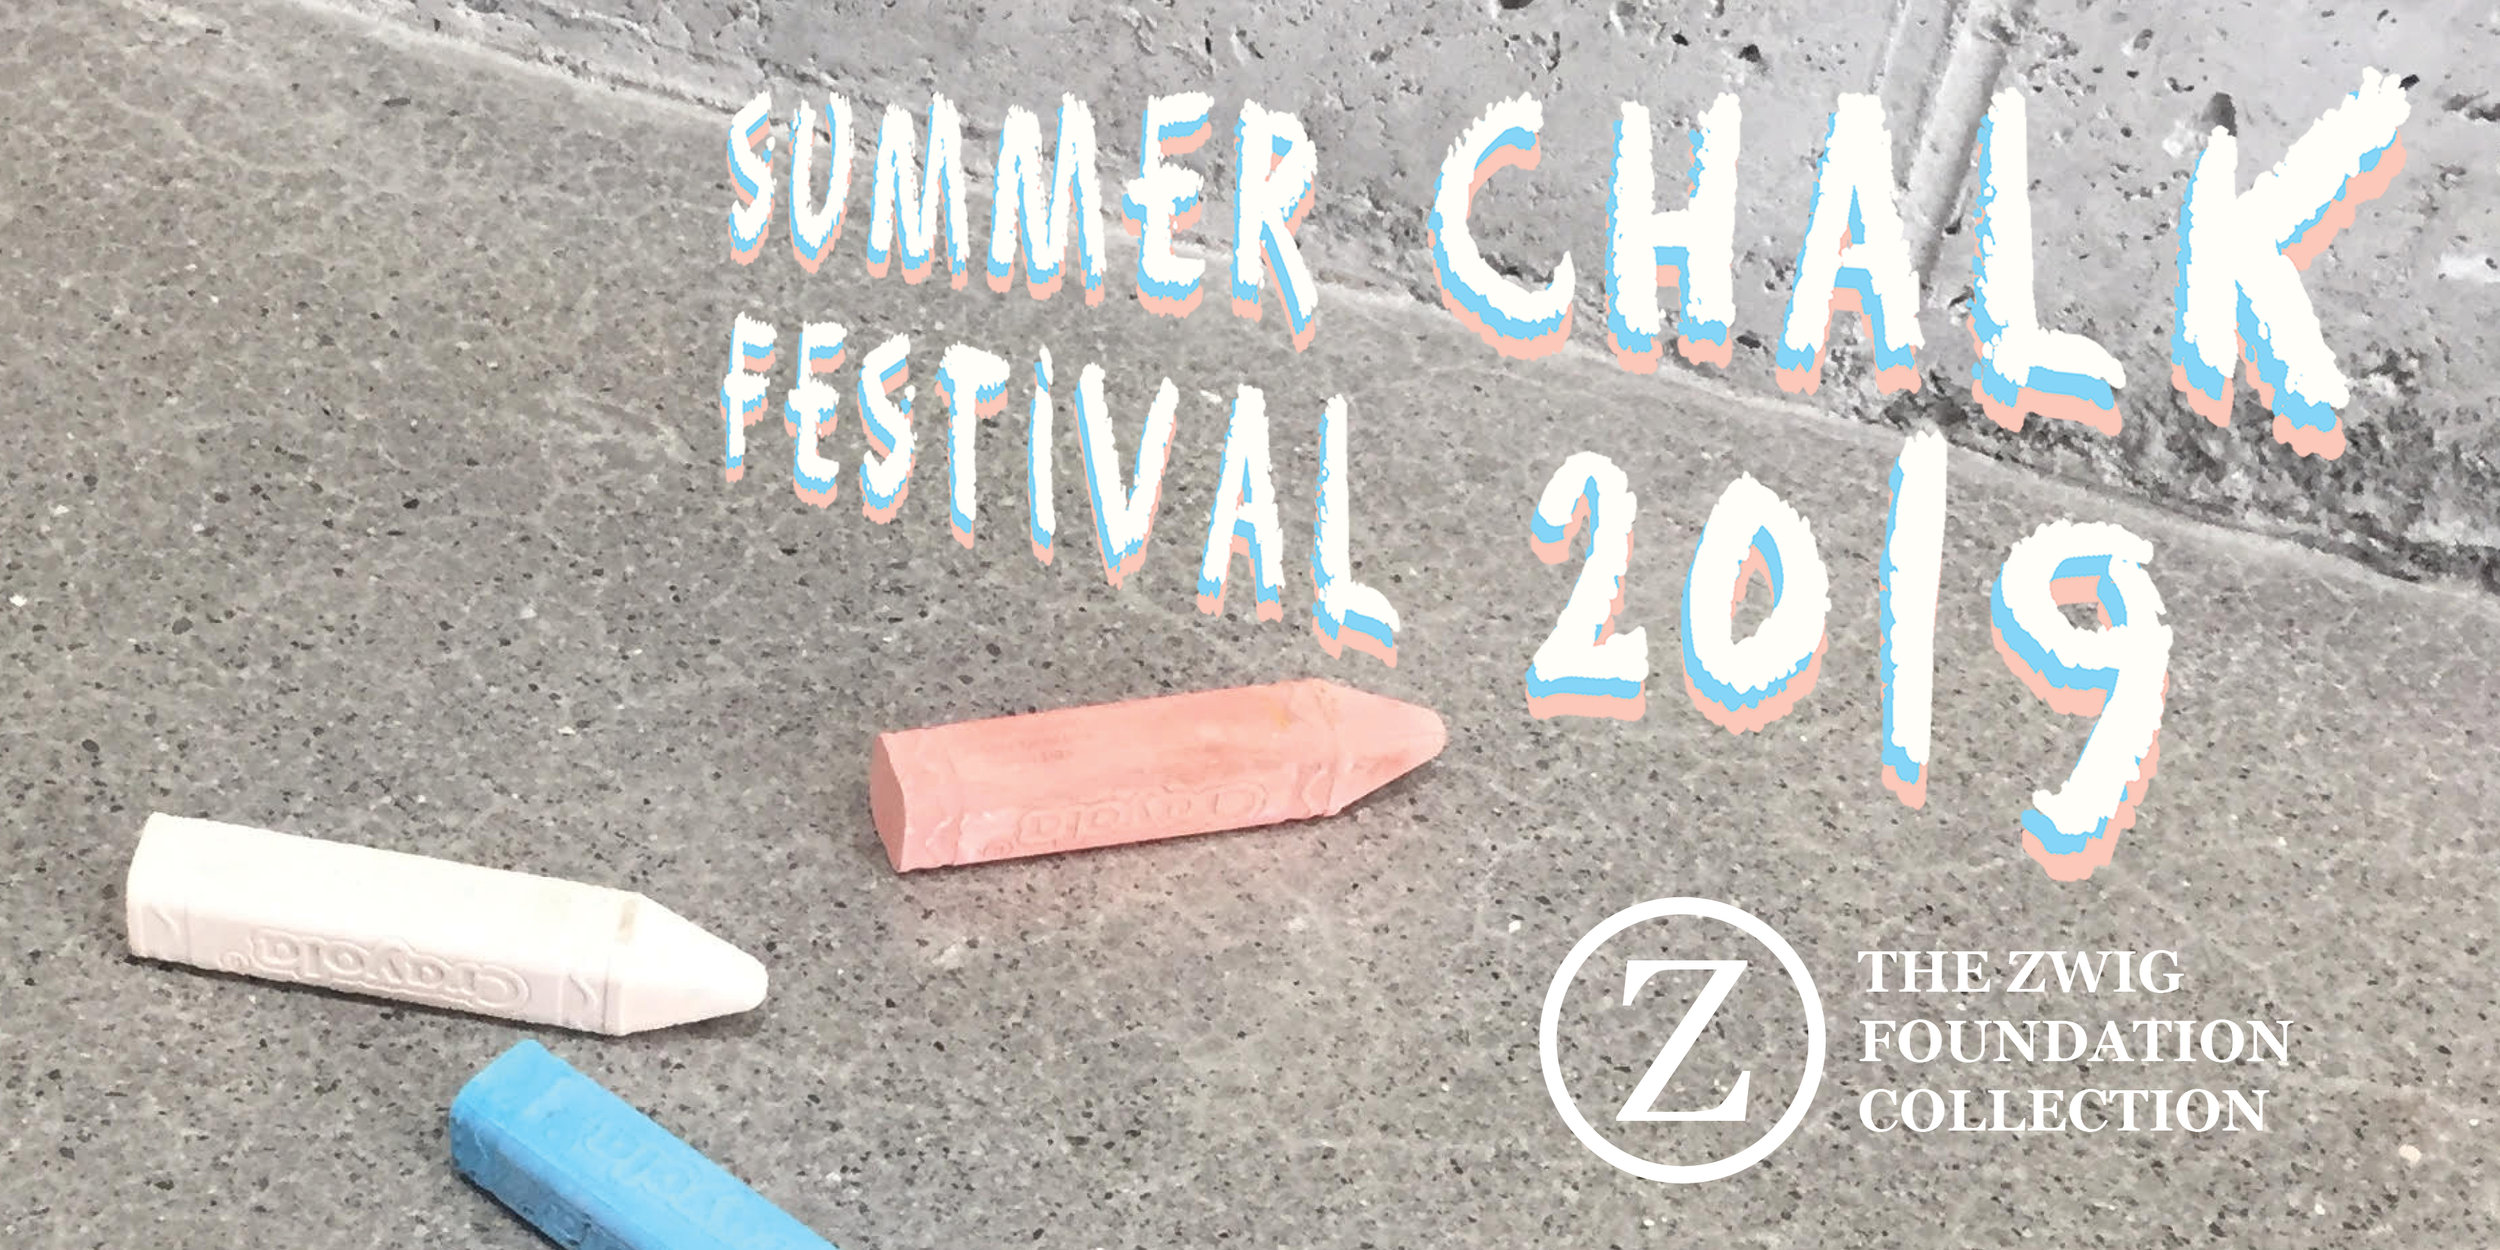 Summer Chalk Festival 2019 - As part of our community focus, we created our inaugural Summer Chalk Festival, for the month of July 2019. We commissioned Alisha Davidson, Amika Cooper, Anna May Henry, Brandon Celi, Jenn Kitagawa, Joshua Advincula, Kaya DaCosta, Kendra yee, Leia Bryans, and Tessar Lo to spend the day creating unique and temporary works of art using chalk and other temporary materials.Joined by local families, we were honoured by the many kids who stopped by to create a work of their own.